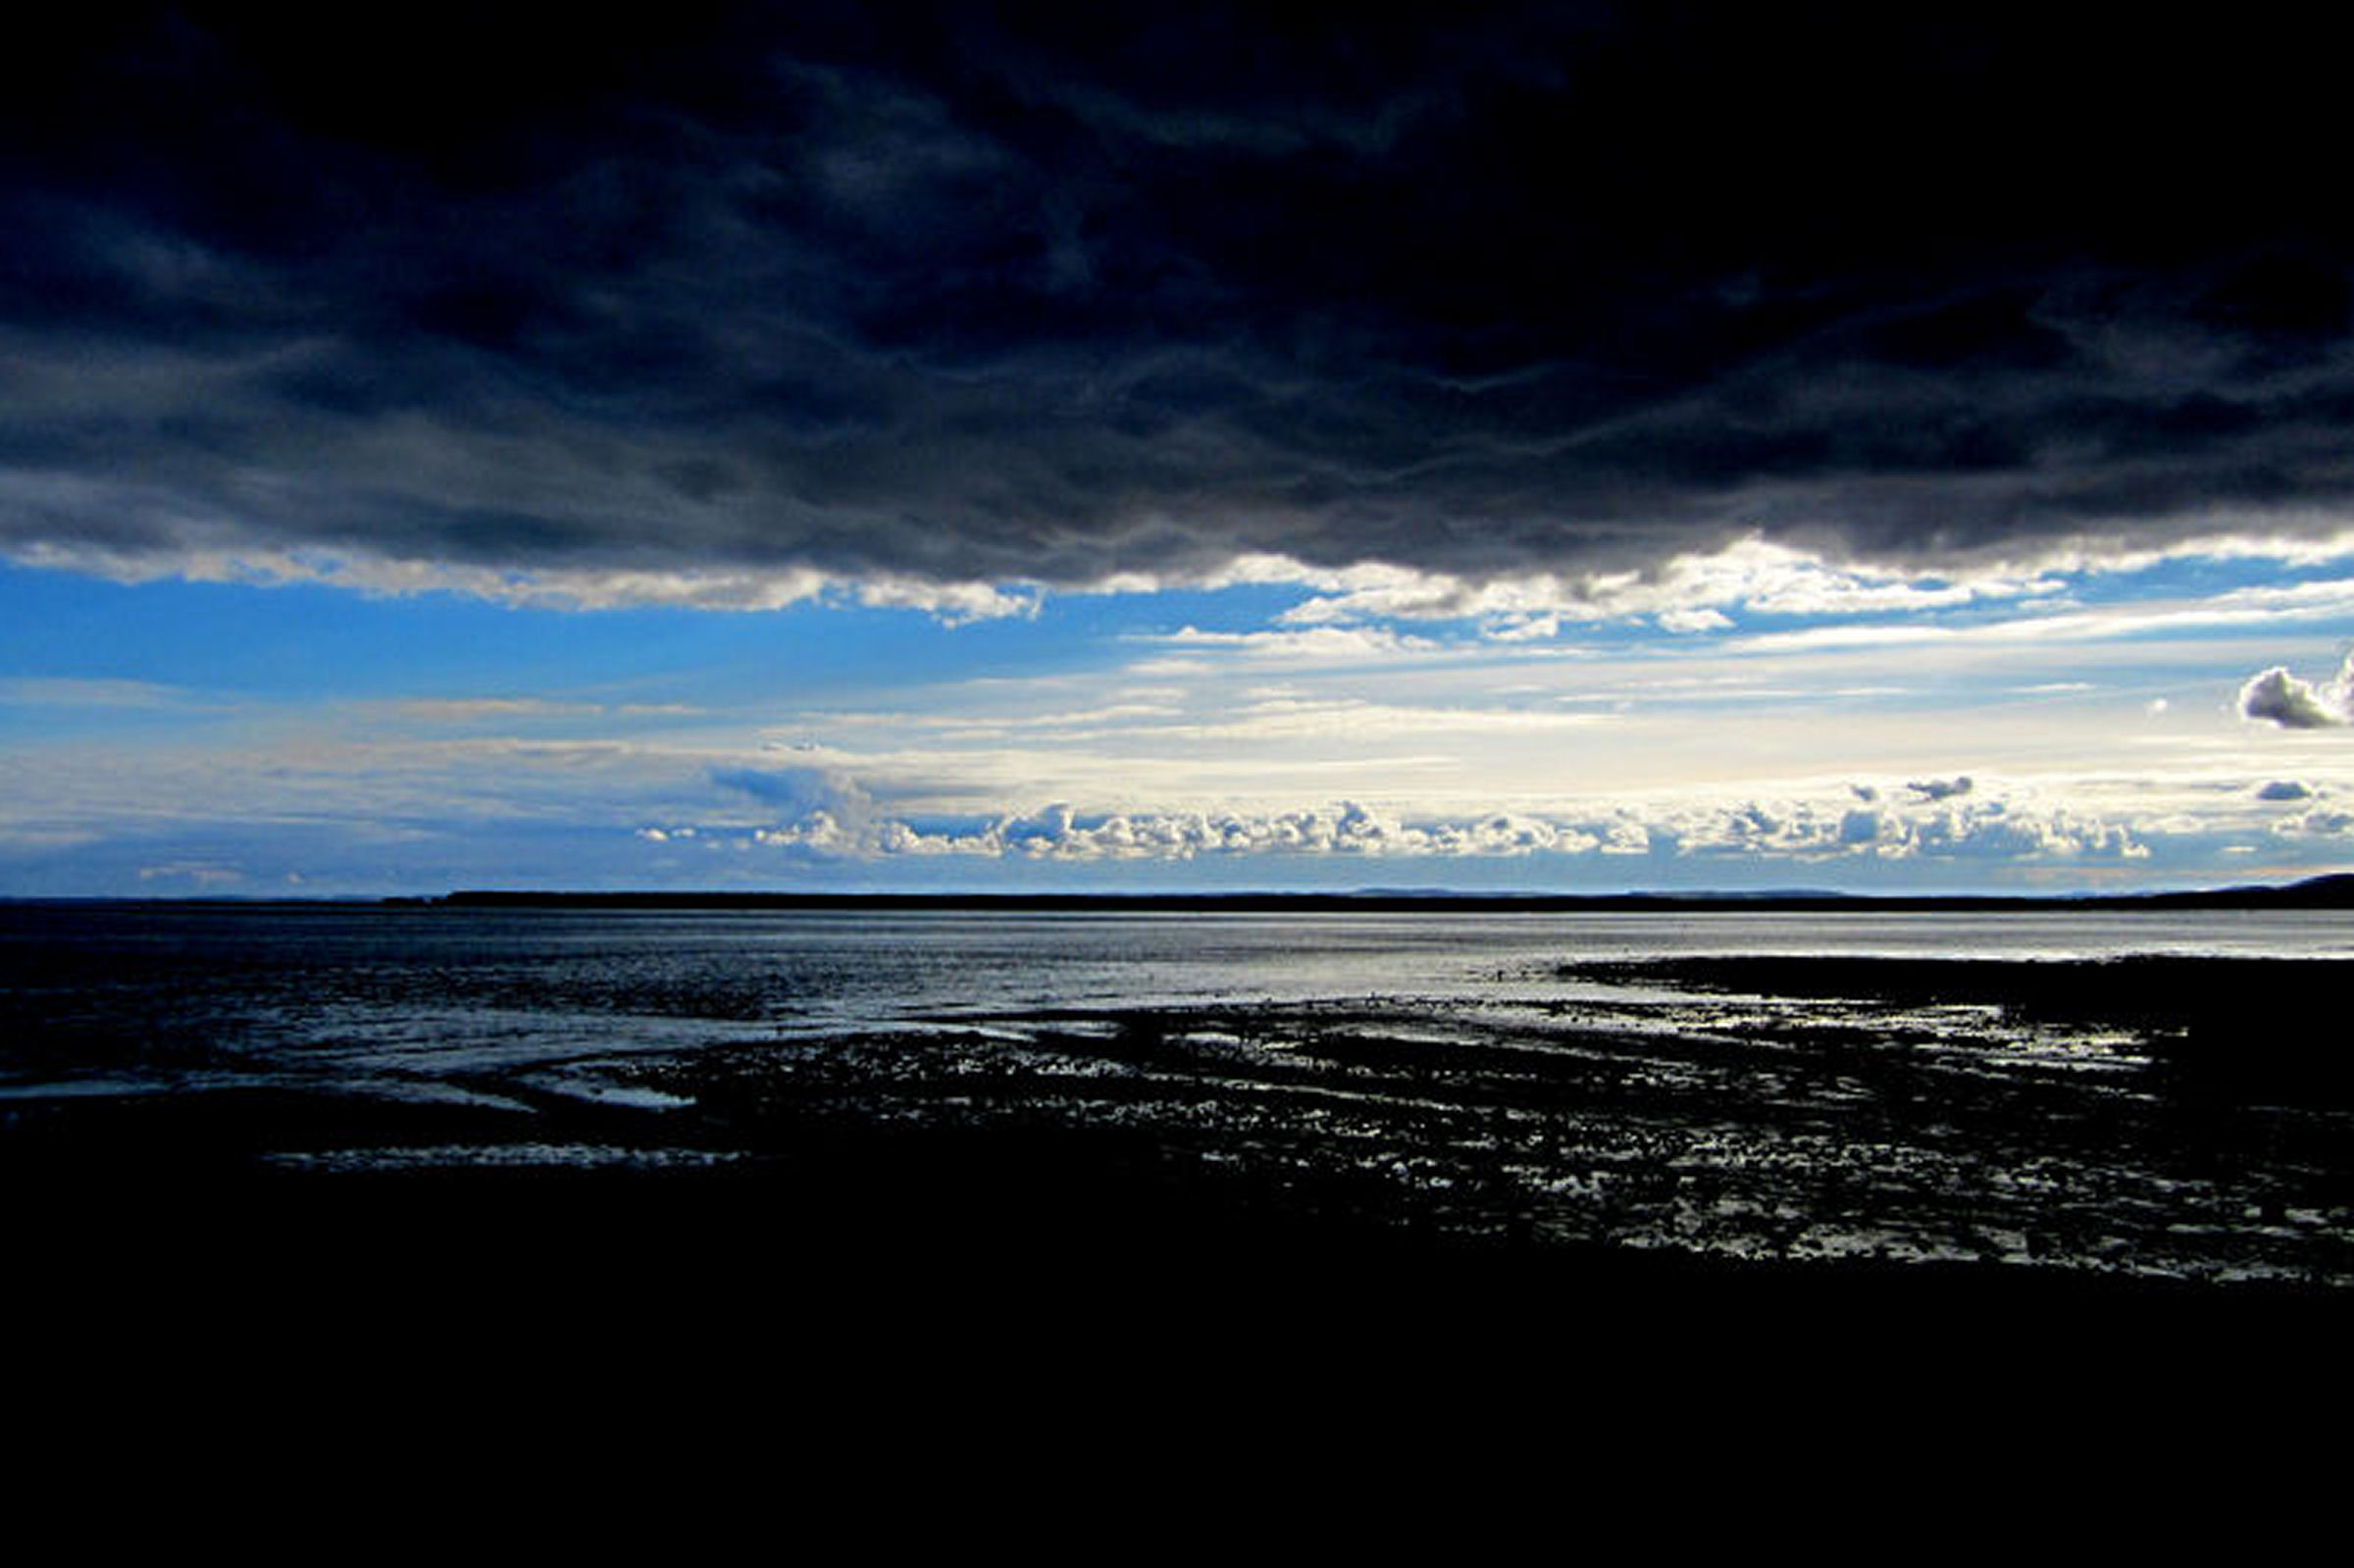 Dramatic clouds over the Tay estuary by Bill Samson. 27.02.2015 15.13pm. Canon IXUS 117 HS f/8 1/640sec  ISO-250 5mm focal length.